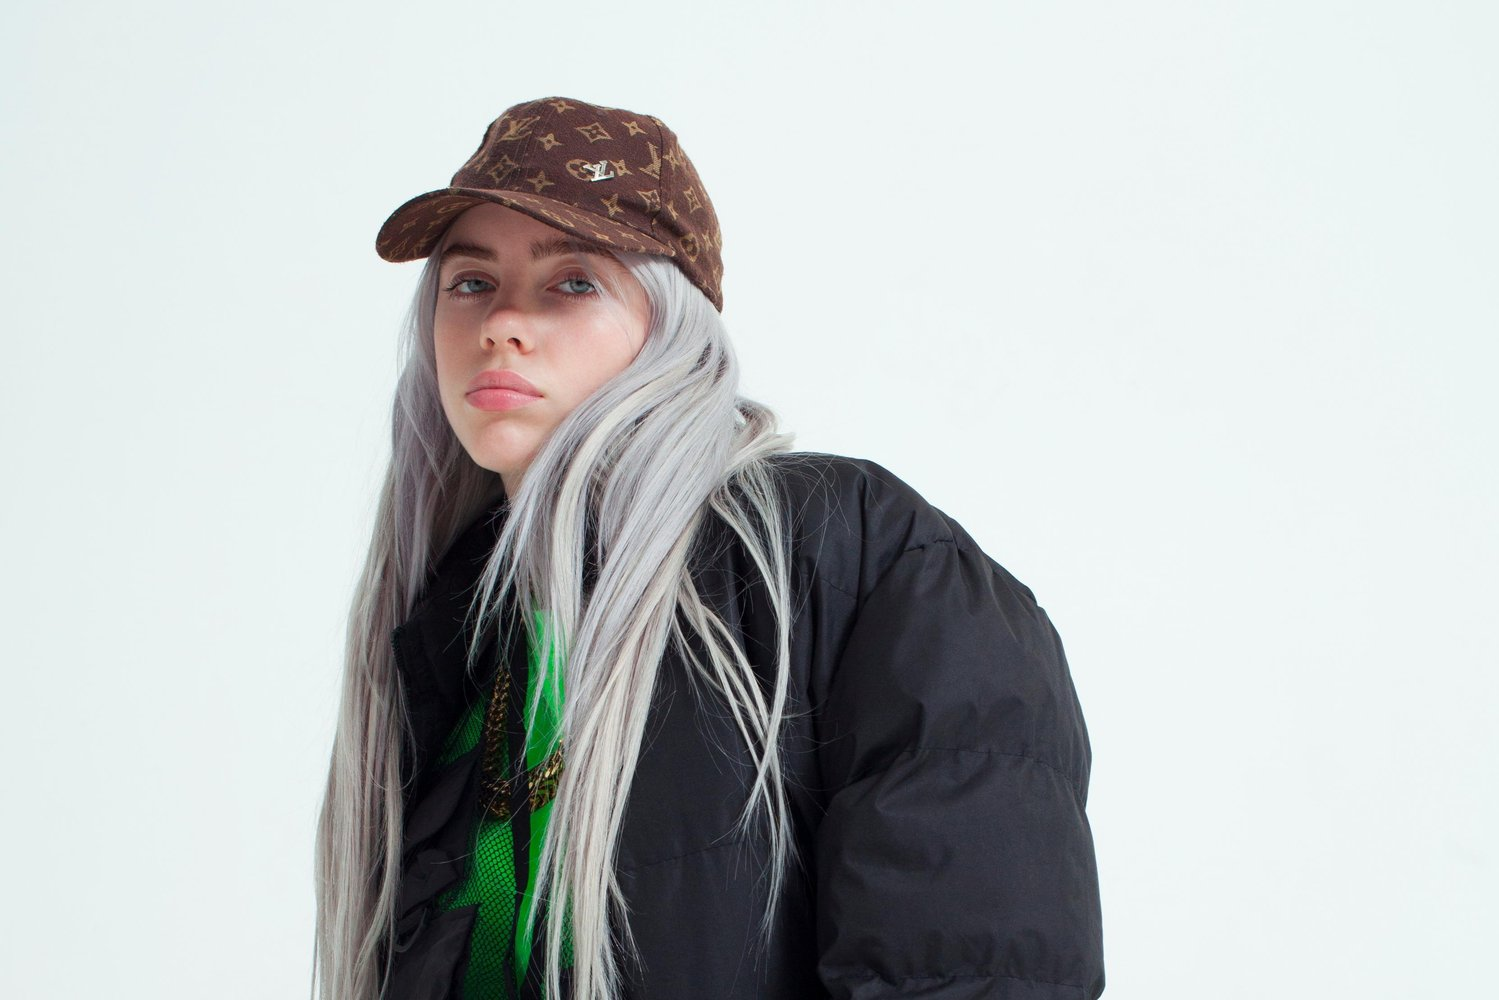 Billie Eilish Lovely Wallpapers, Themes & Backgrounds HD